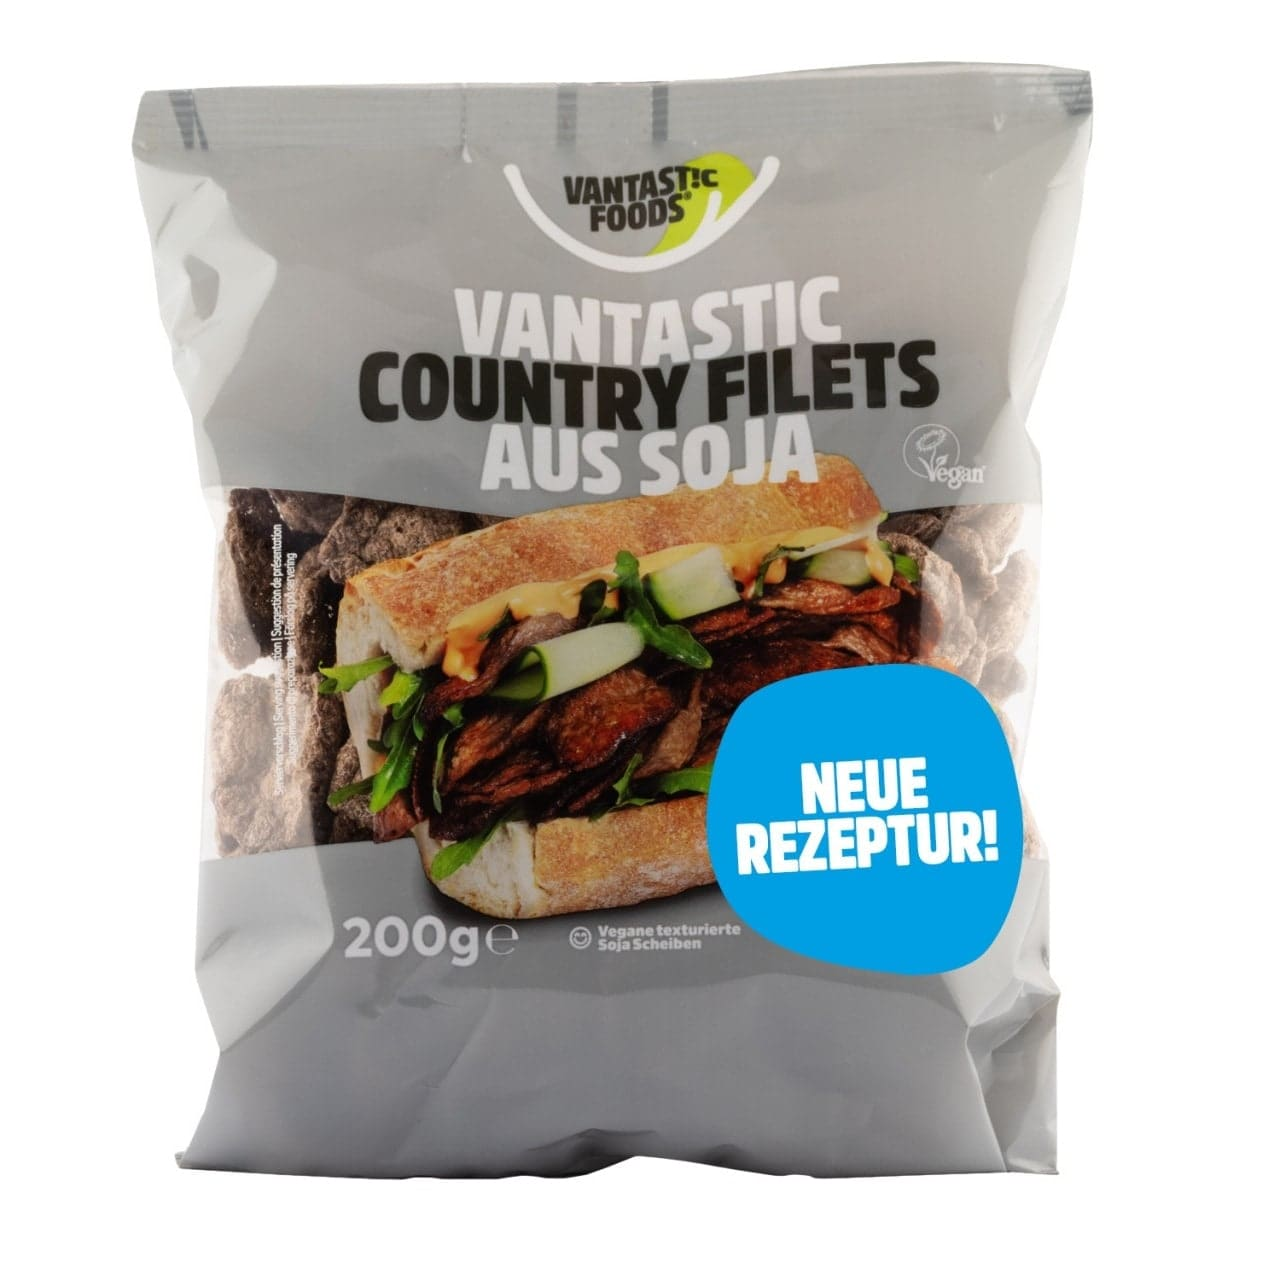 Vantastic foods VANTASTIC COUNTRY FILETS aus Soja, 200g von Vantastic foods